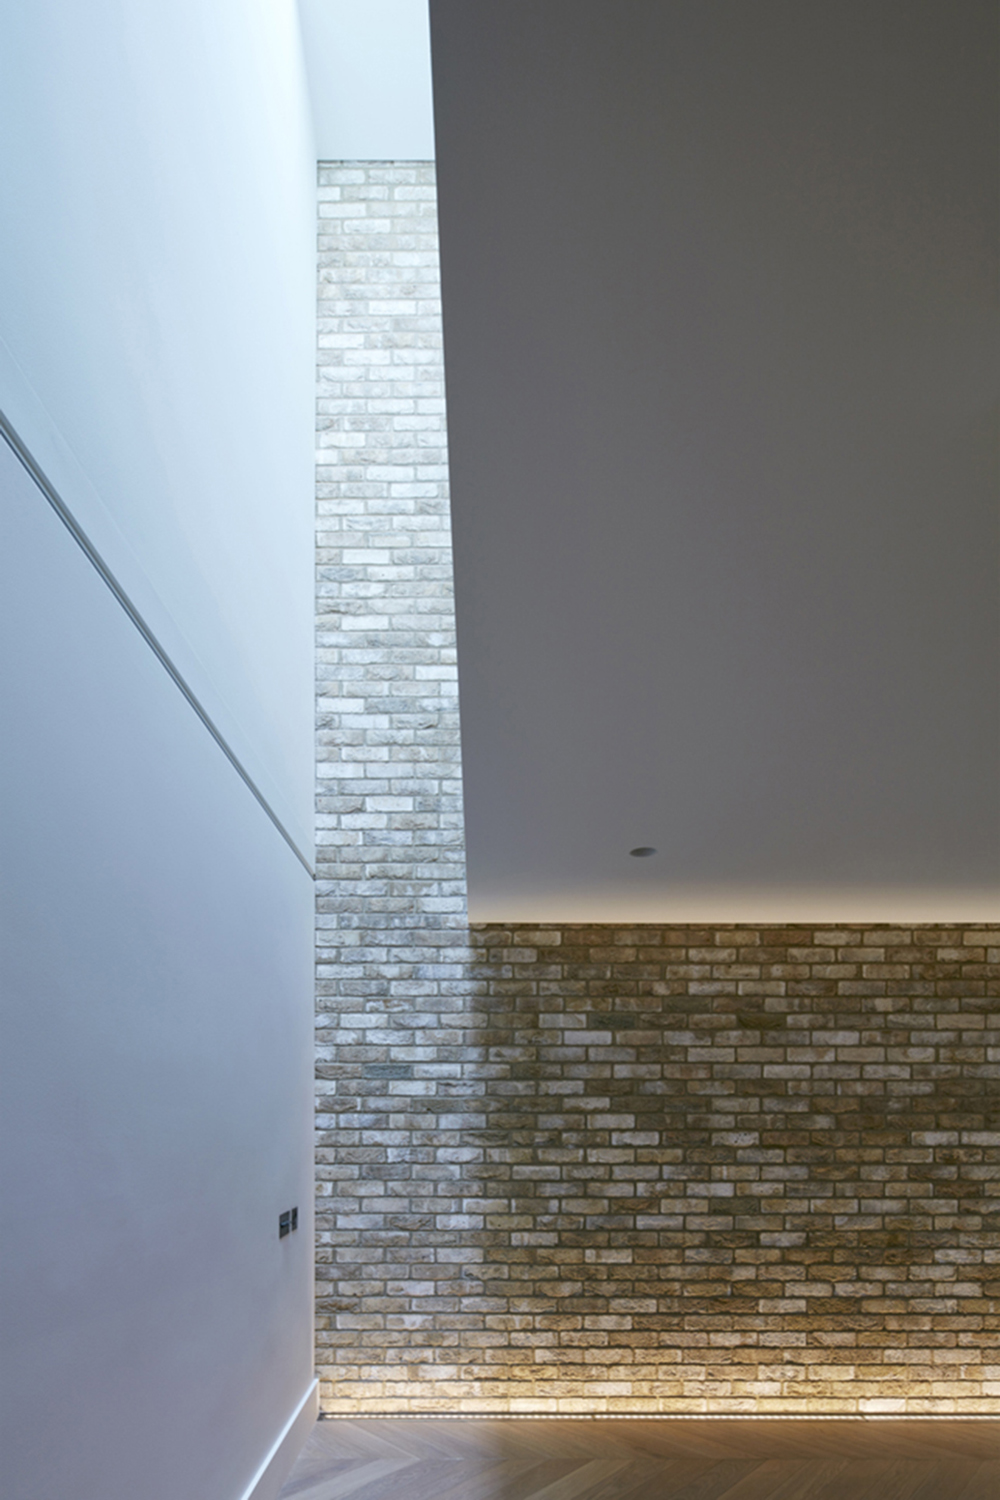 Hidden House Chelsea Knightsbridge LTS Architects - detail view brickwork lighting